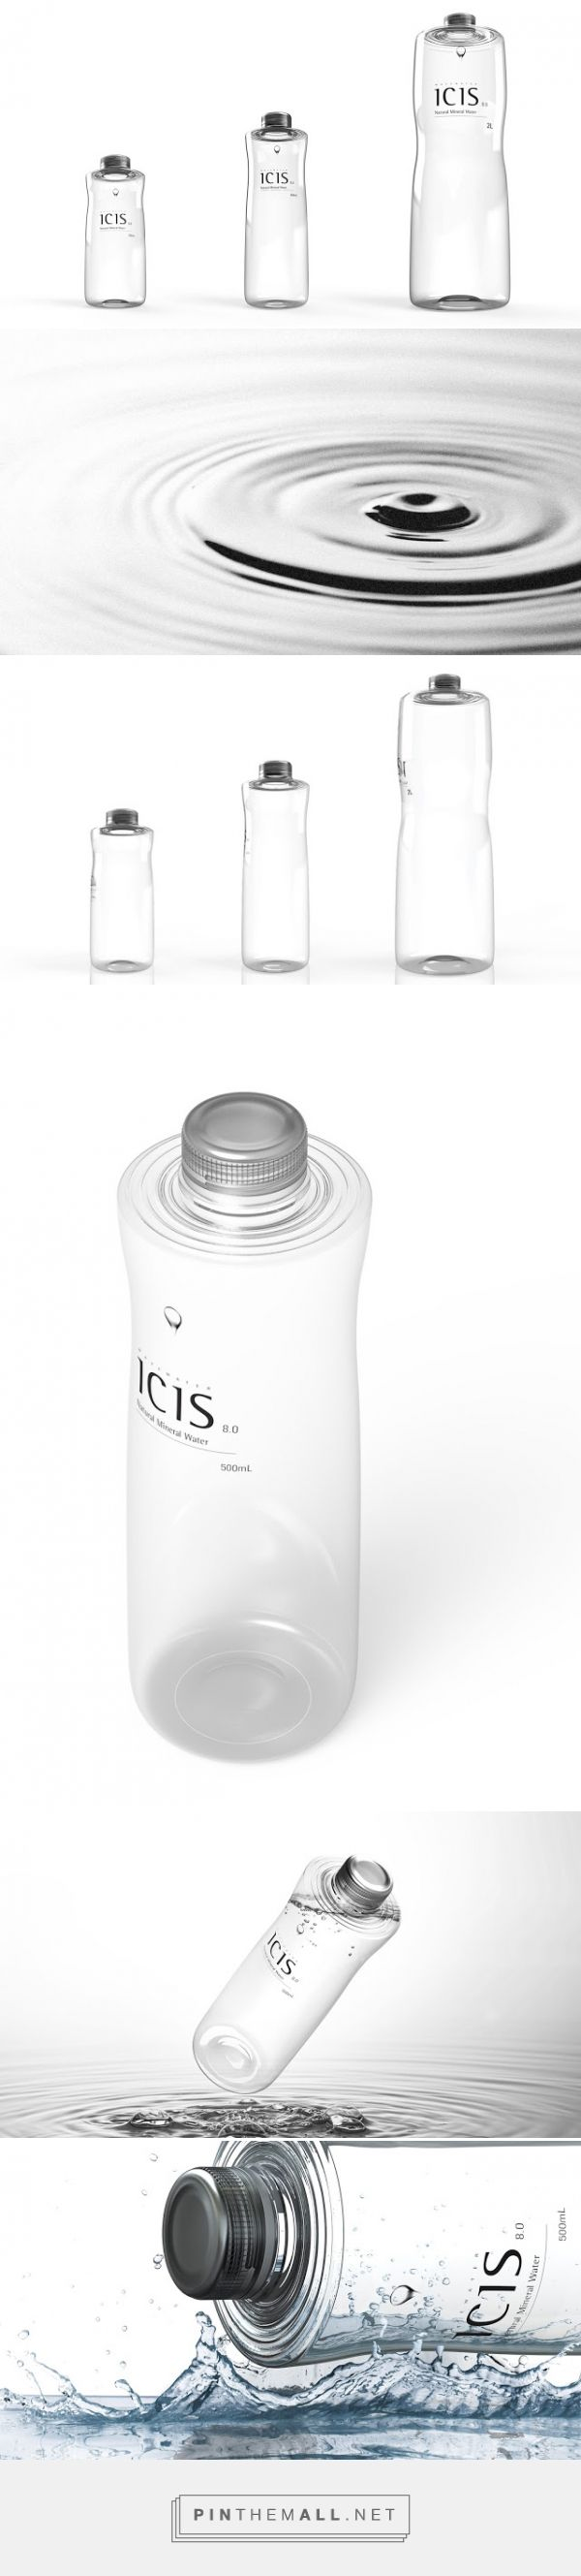 ICIS Ripple Water Concept Packaging designed by Choi Seungho - http://www.packagingoftheworld.com/2015/11/icis-wave-water-concept.html